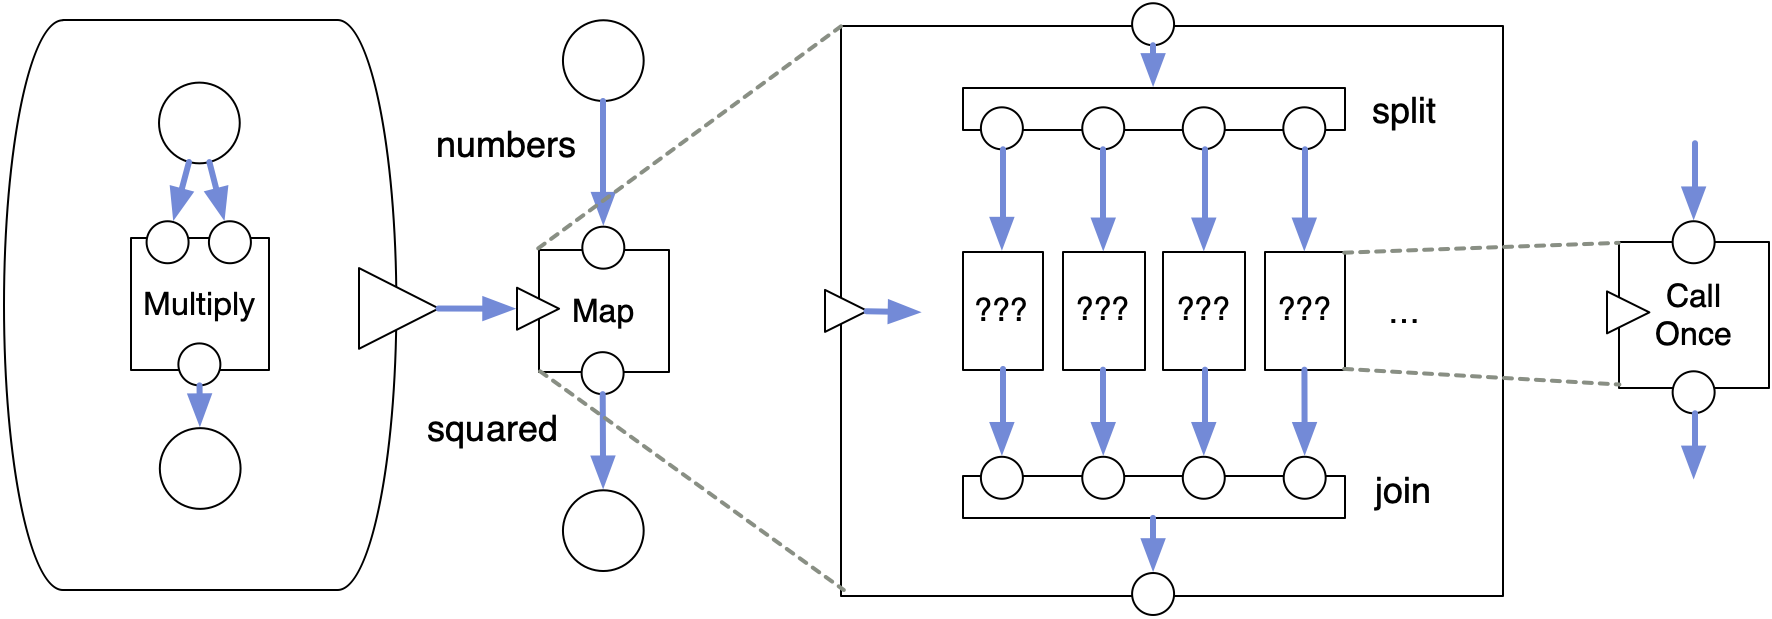 implementing map in a DFG